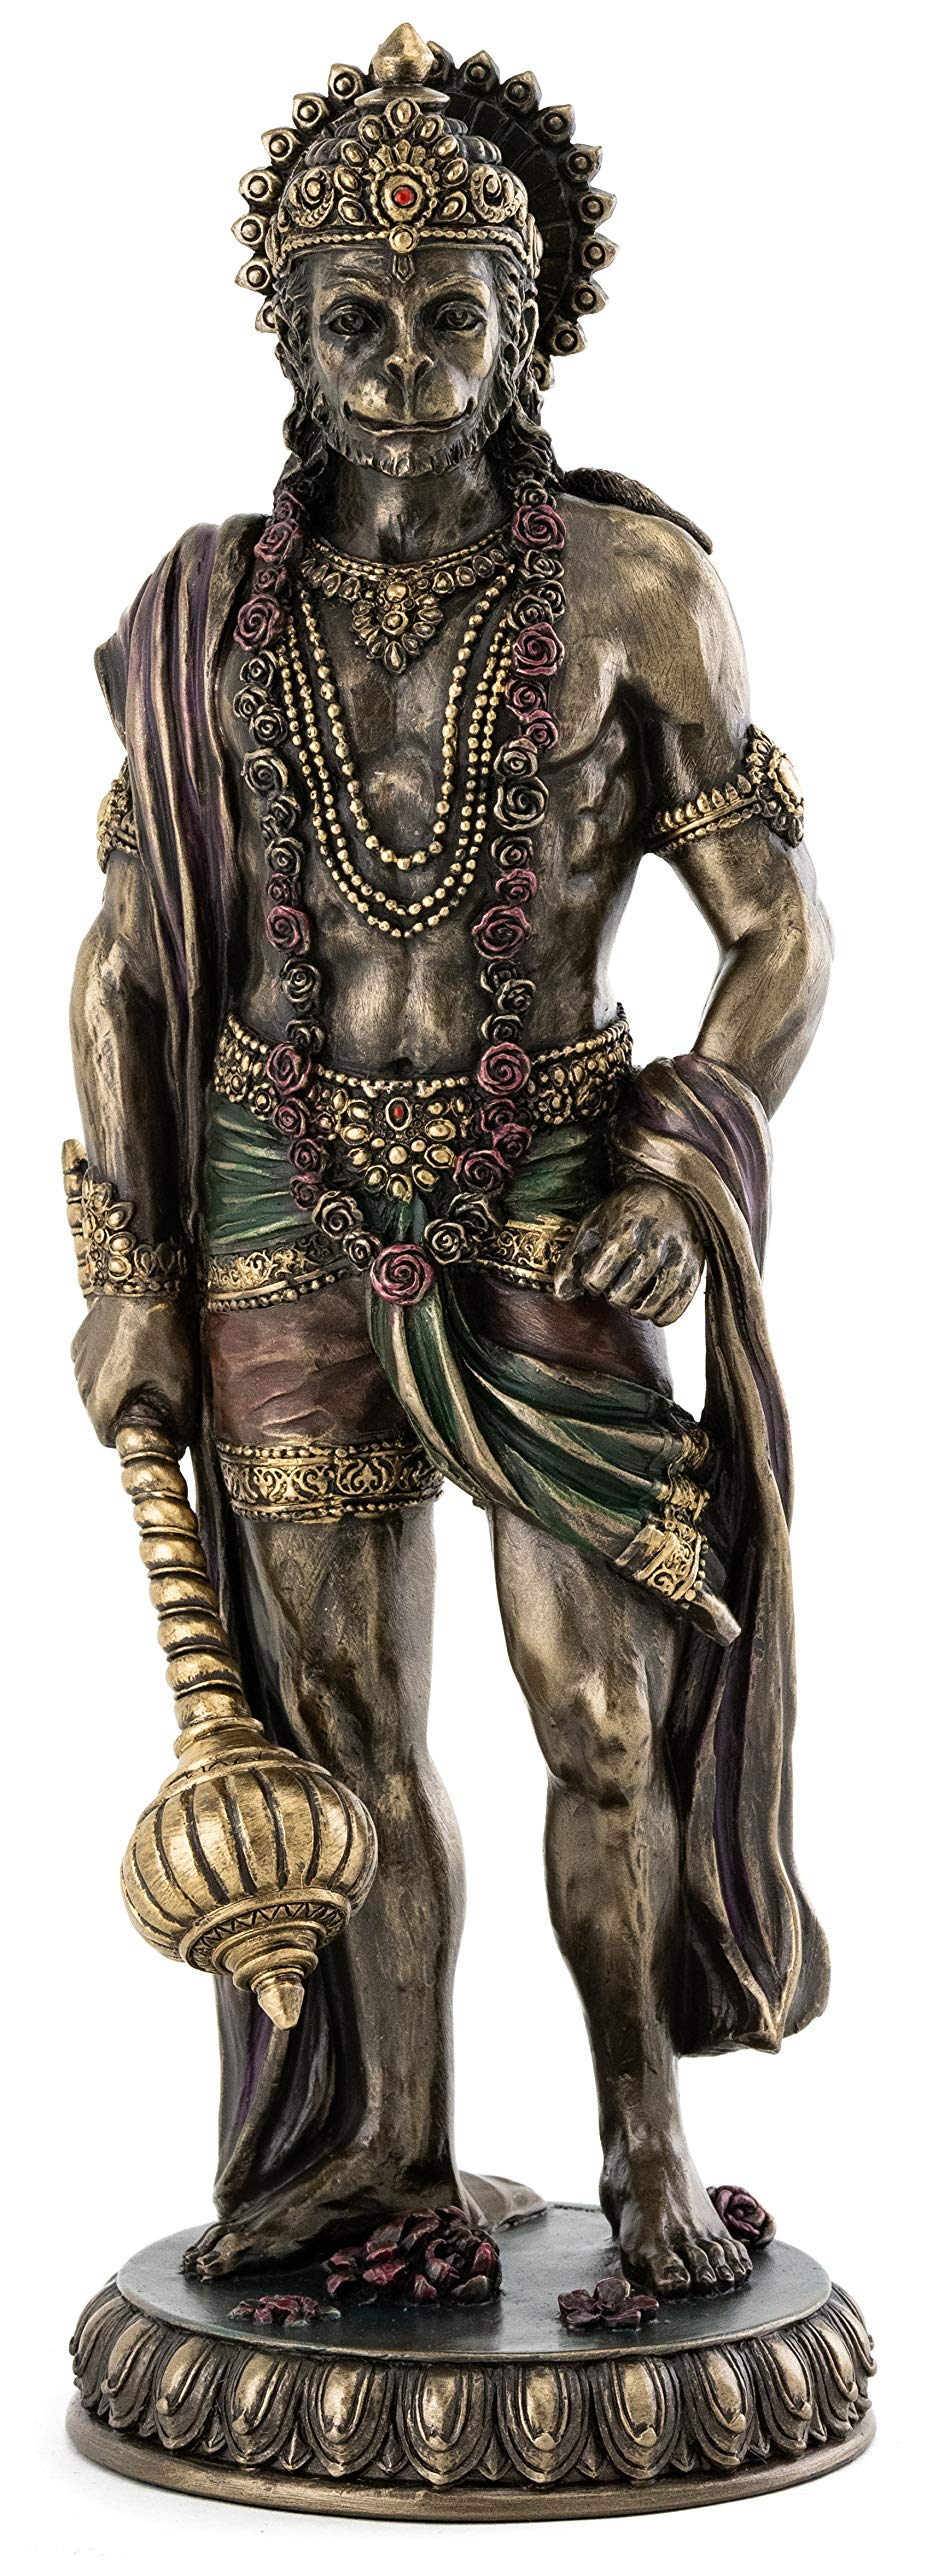 Top Collection Large Hanuman Statue - Hindu God of Strength Sculpture in Premium Cold Cast Bronze - 24.25-Inch Collectible Figurine